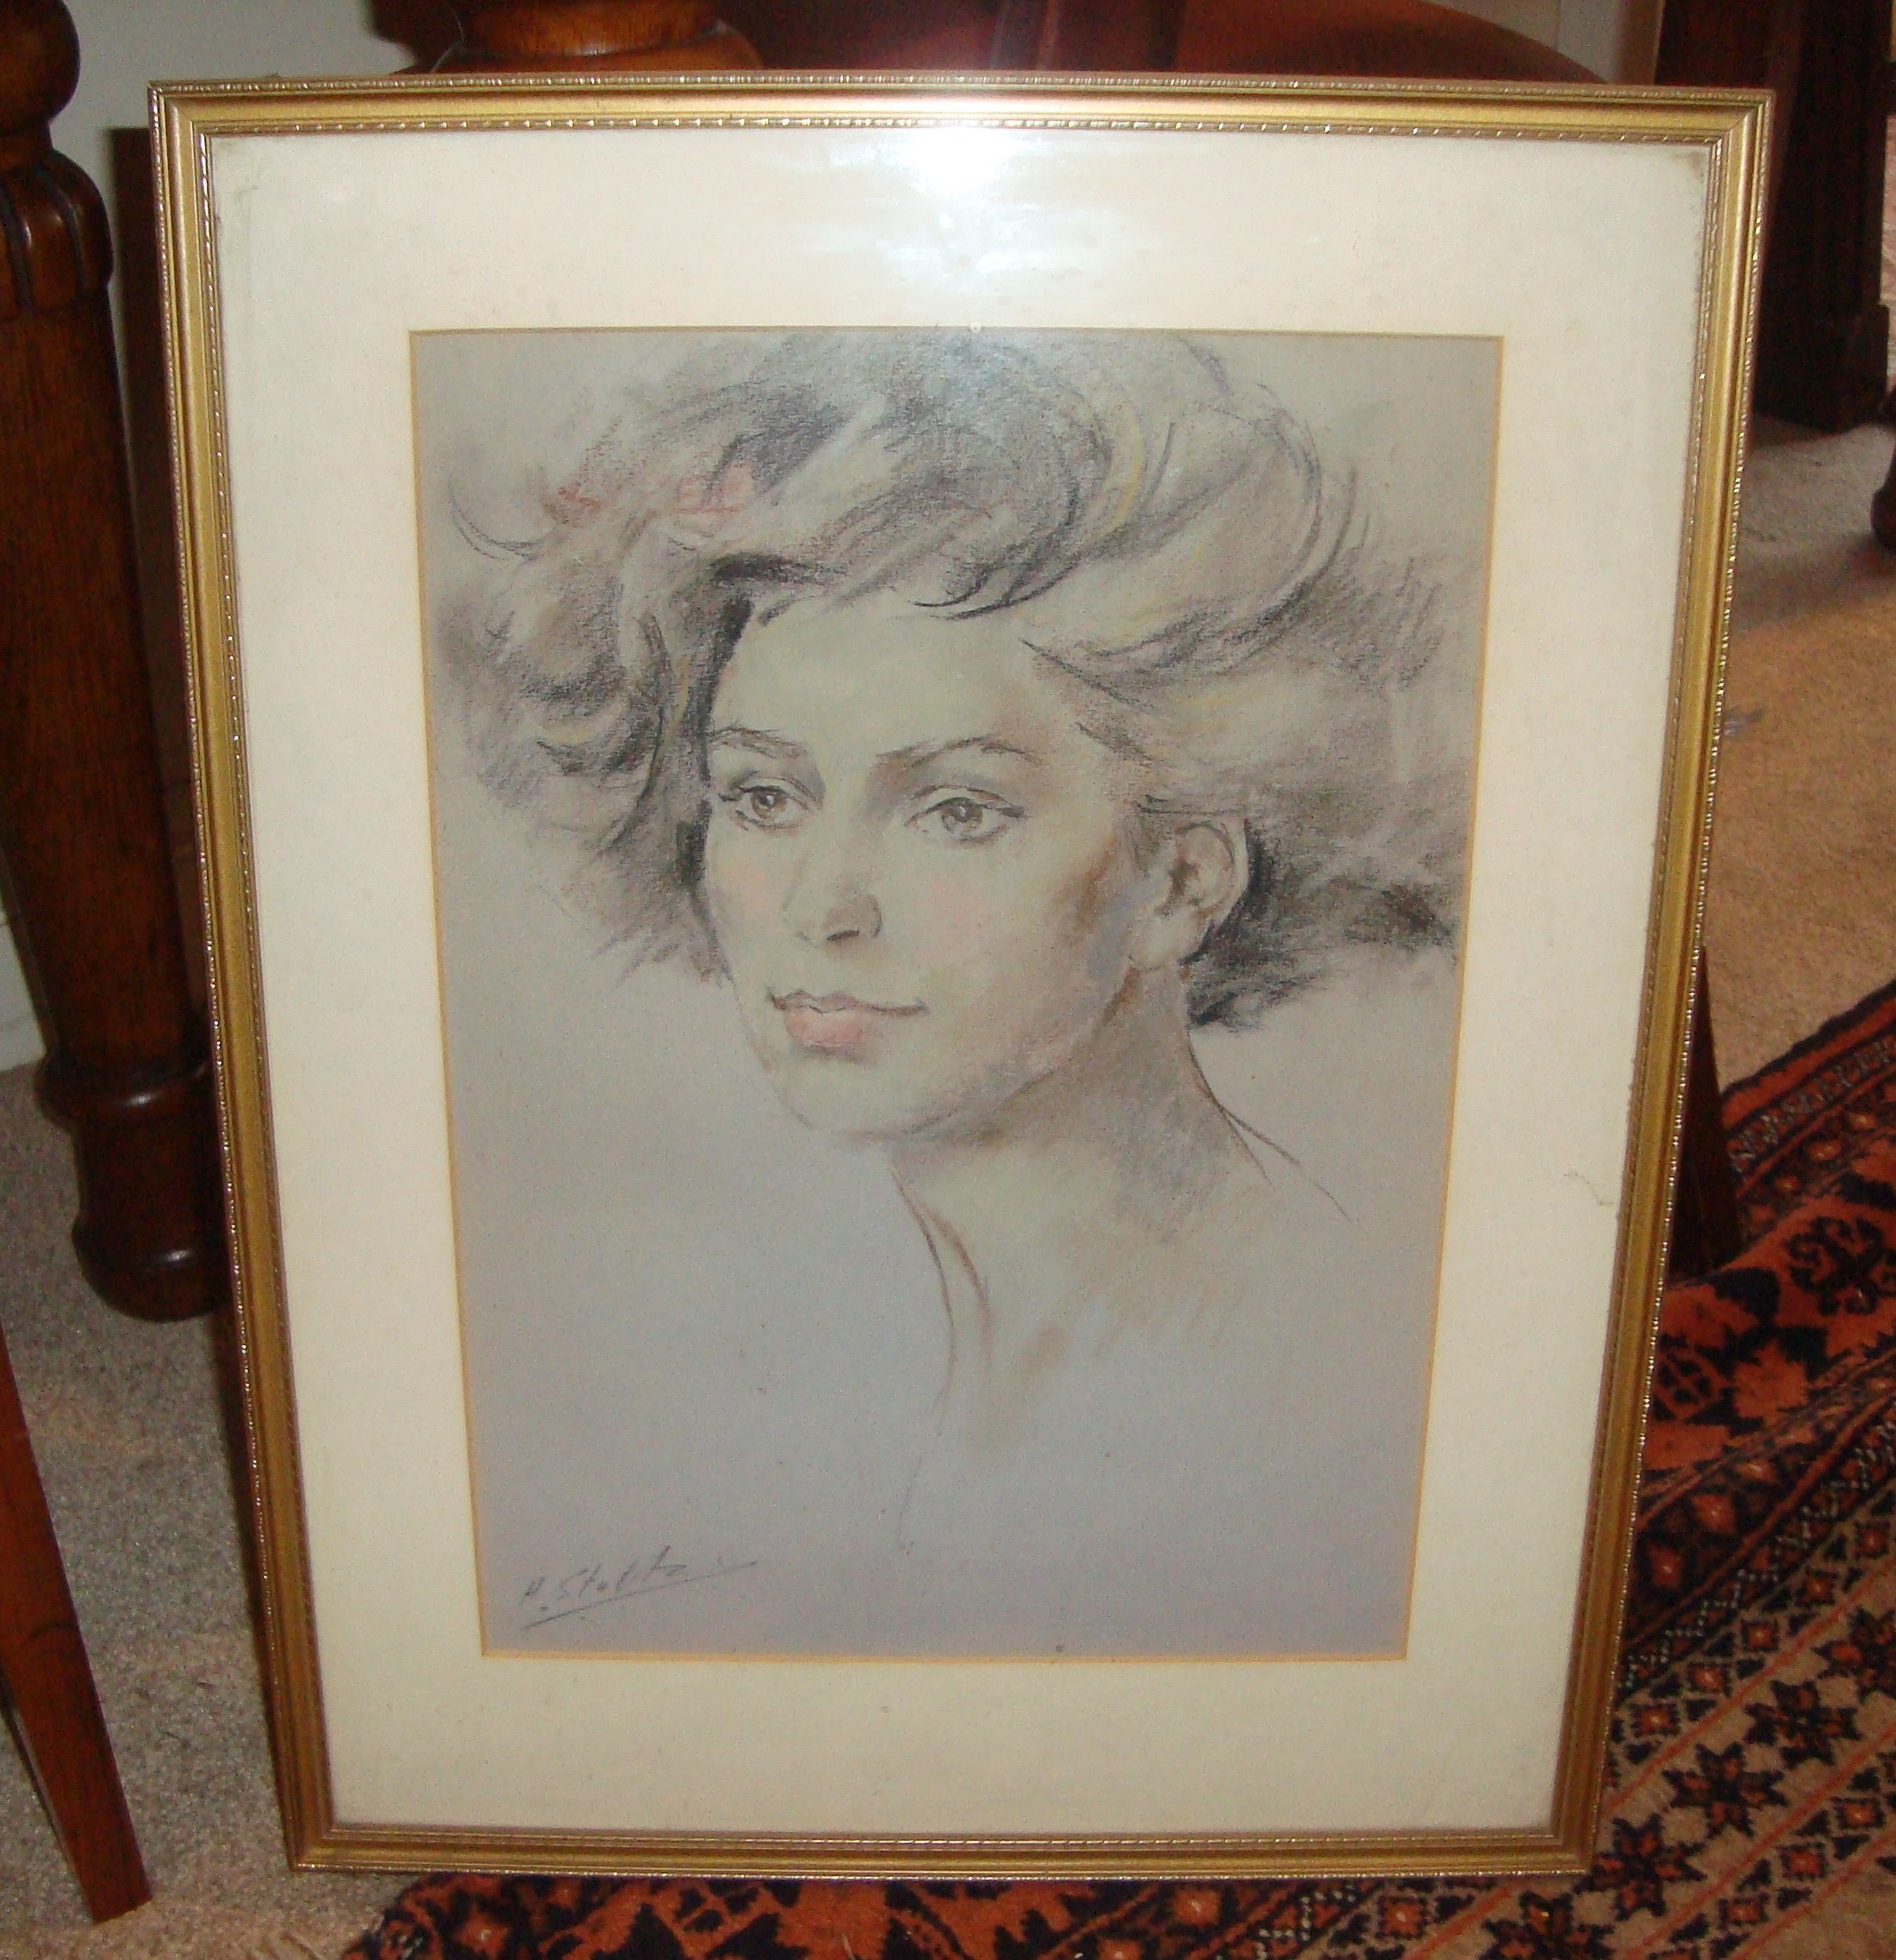 Framed coloured pencil drawing of a pretty lady